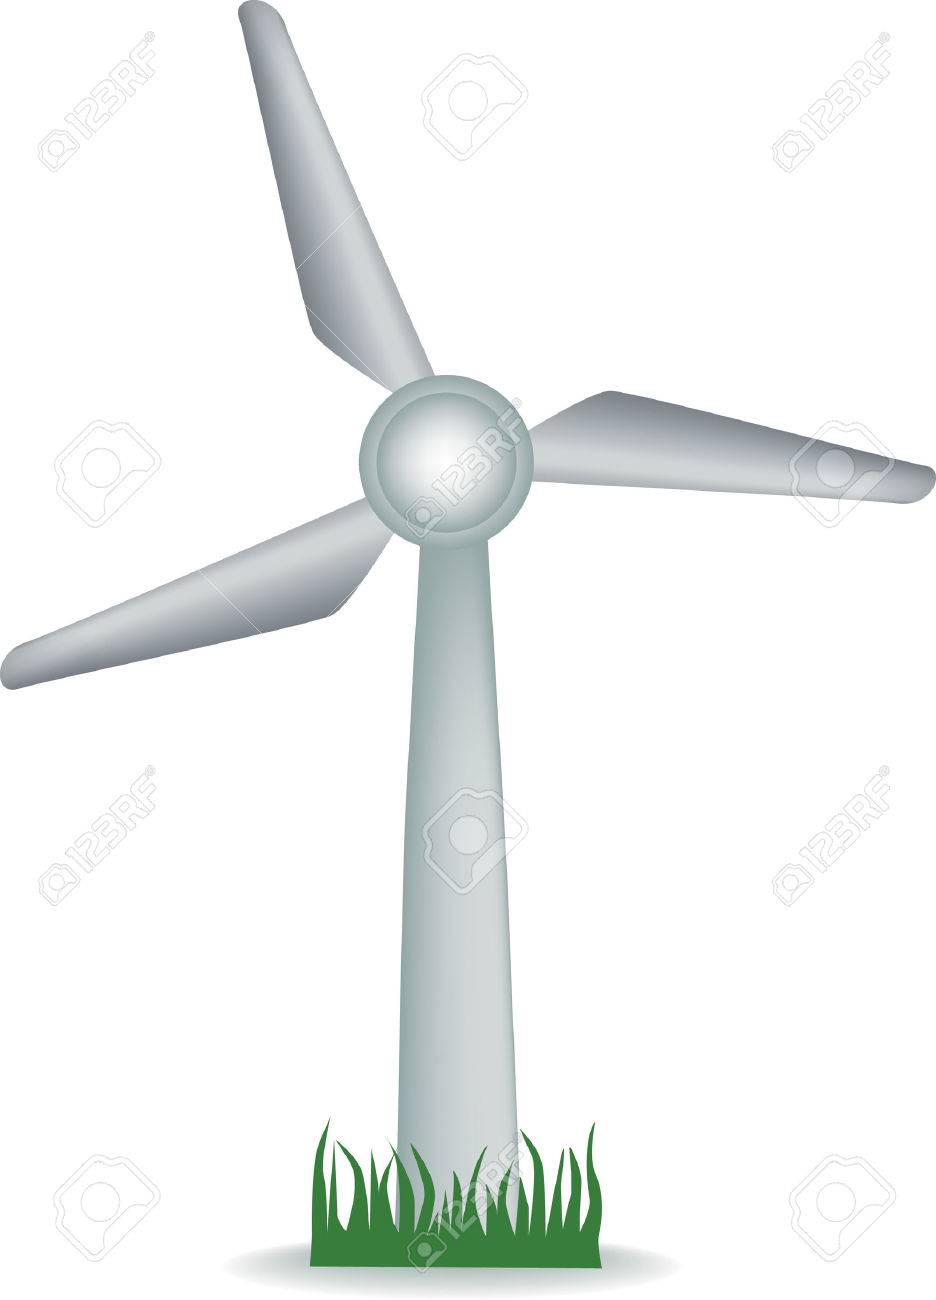 illustration of a wind turbine on grass royalty free cliparts rh 123rf com wind turbine clipart no background animated wind turbine clipart